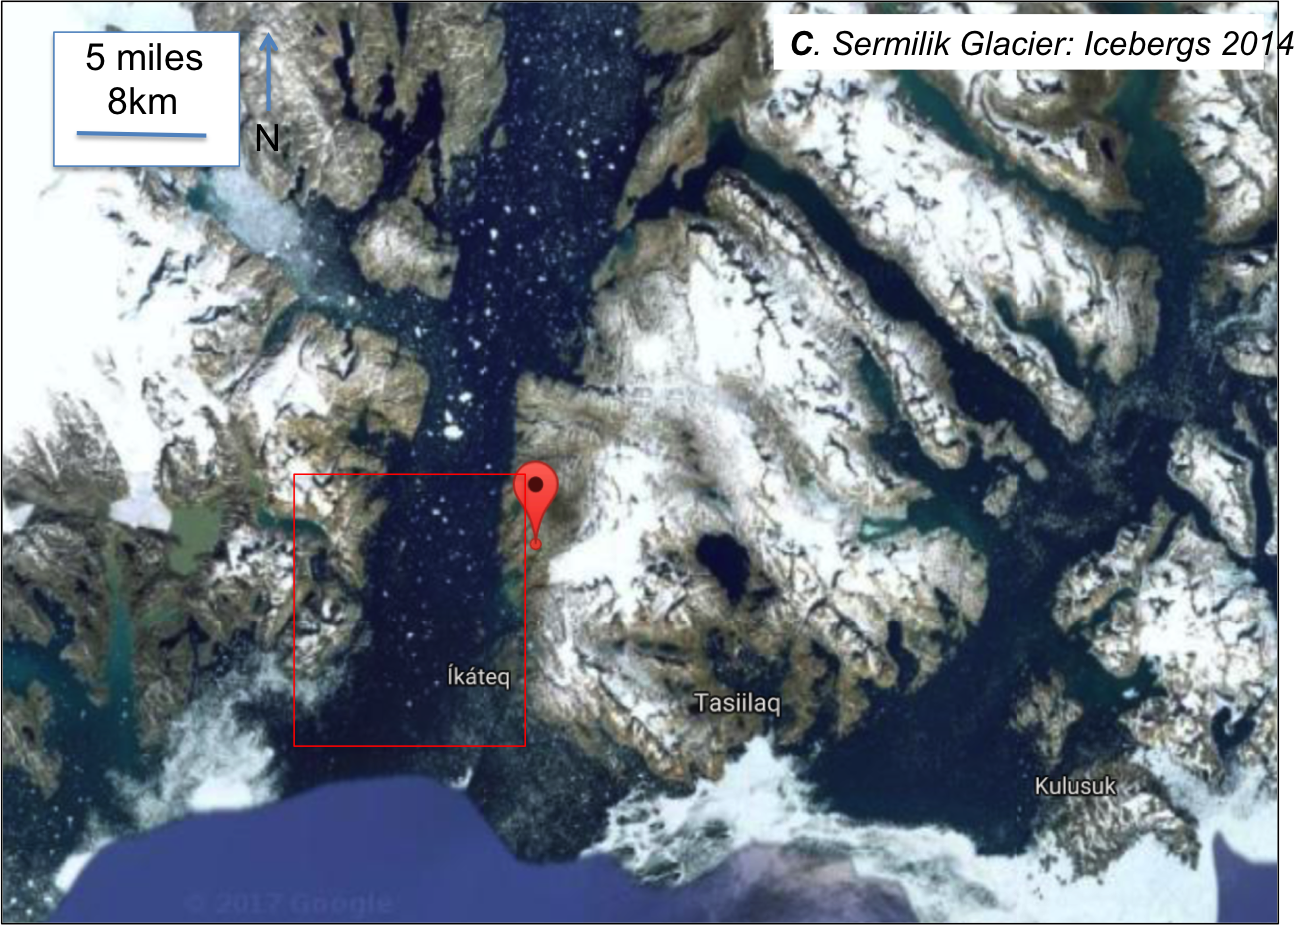 Figure 4: Sermilik fjord, iceberg samples collected in red boxed area, the balloon is pinned at 65.7N, 37.9W; image modified from Google maps